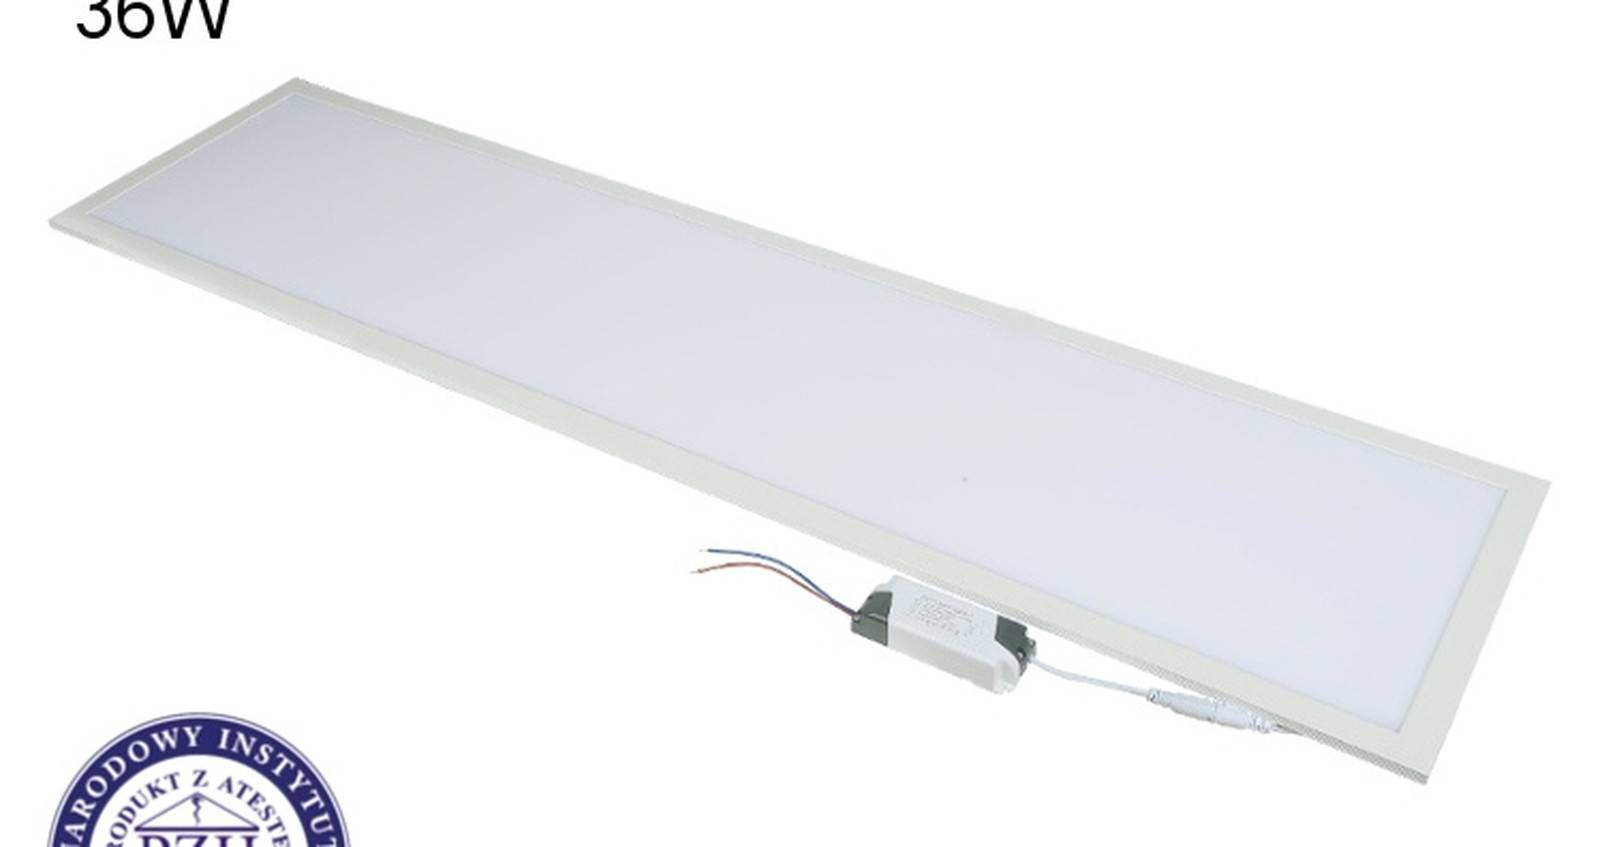 Recessed LED PANEL 300x1200 — UPPOAVA, 36W/72W, dimmable, high CRI97